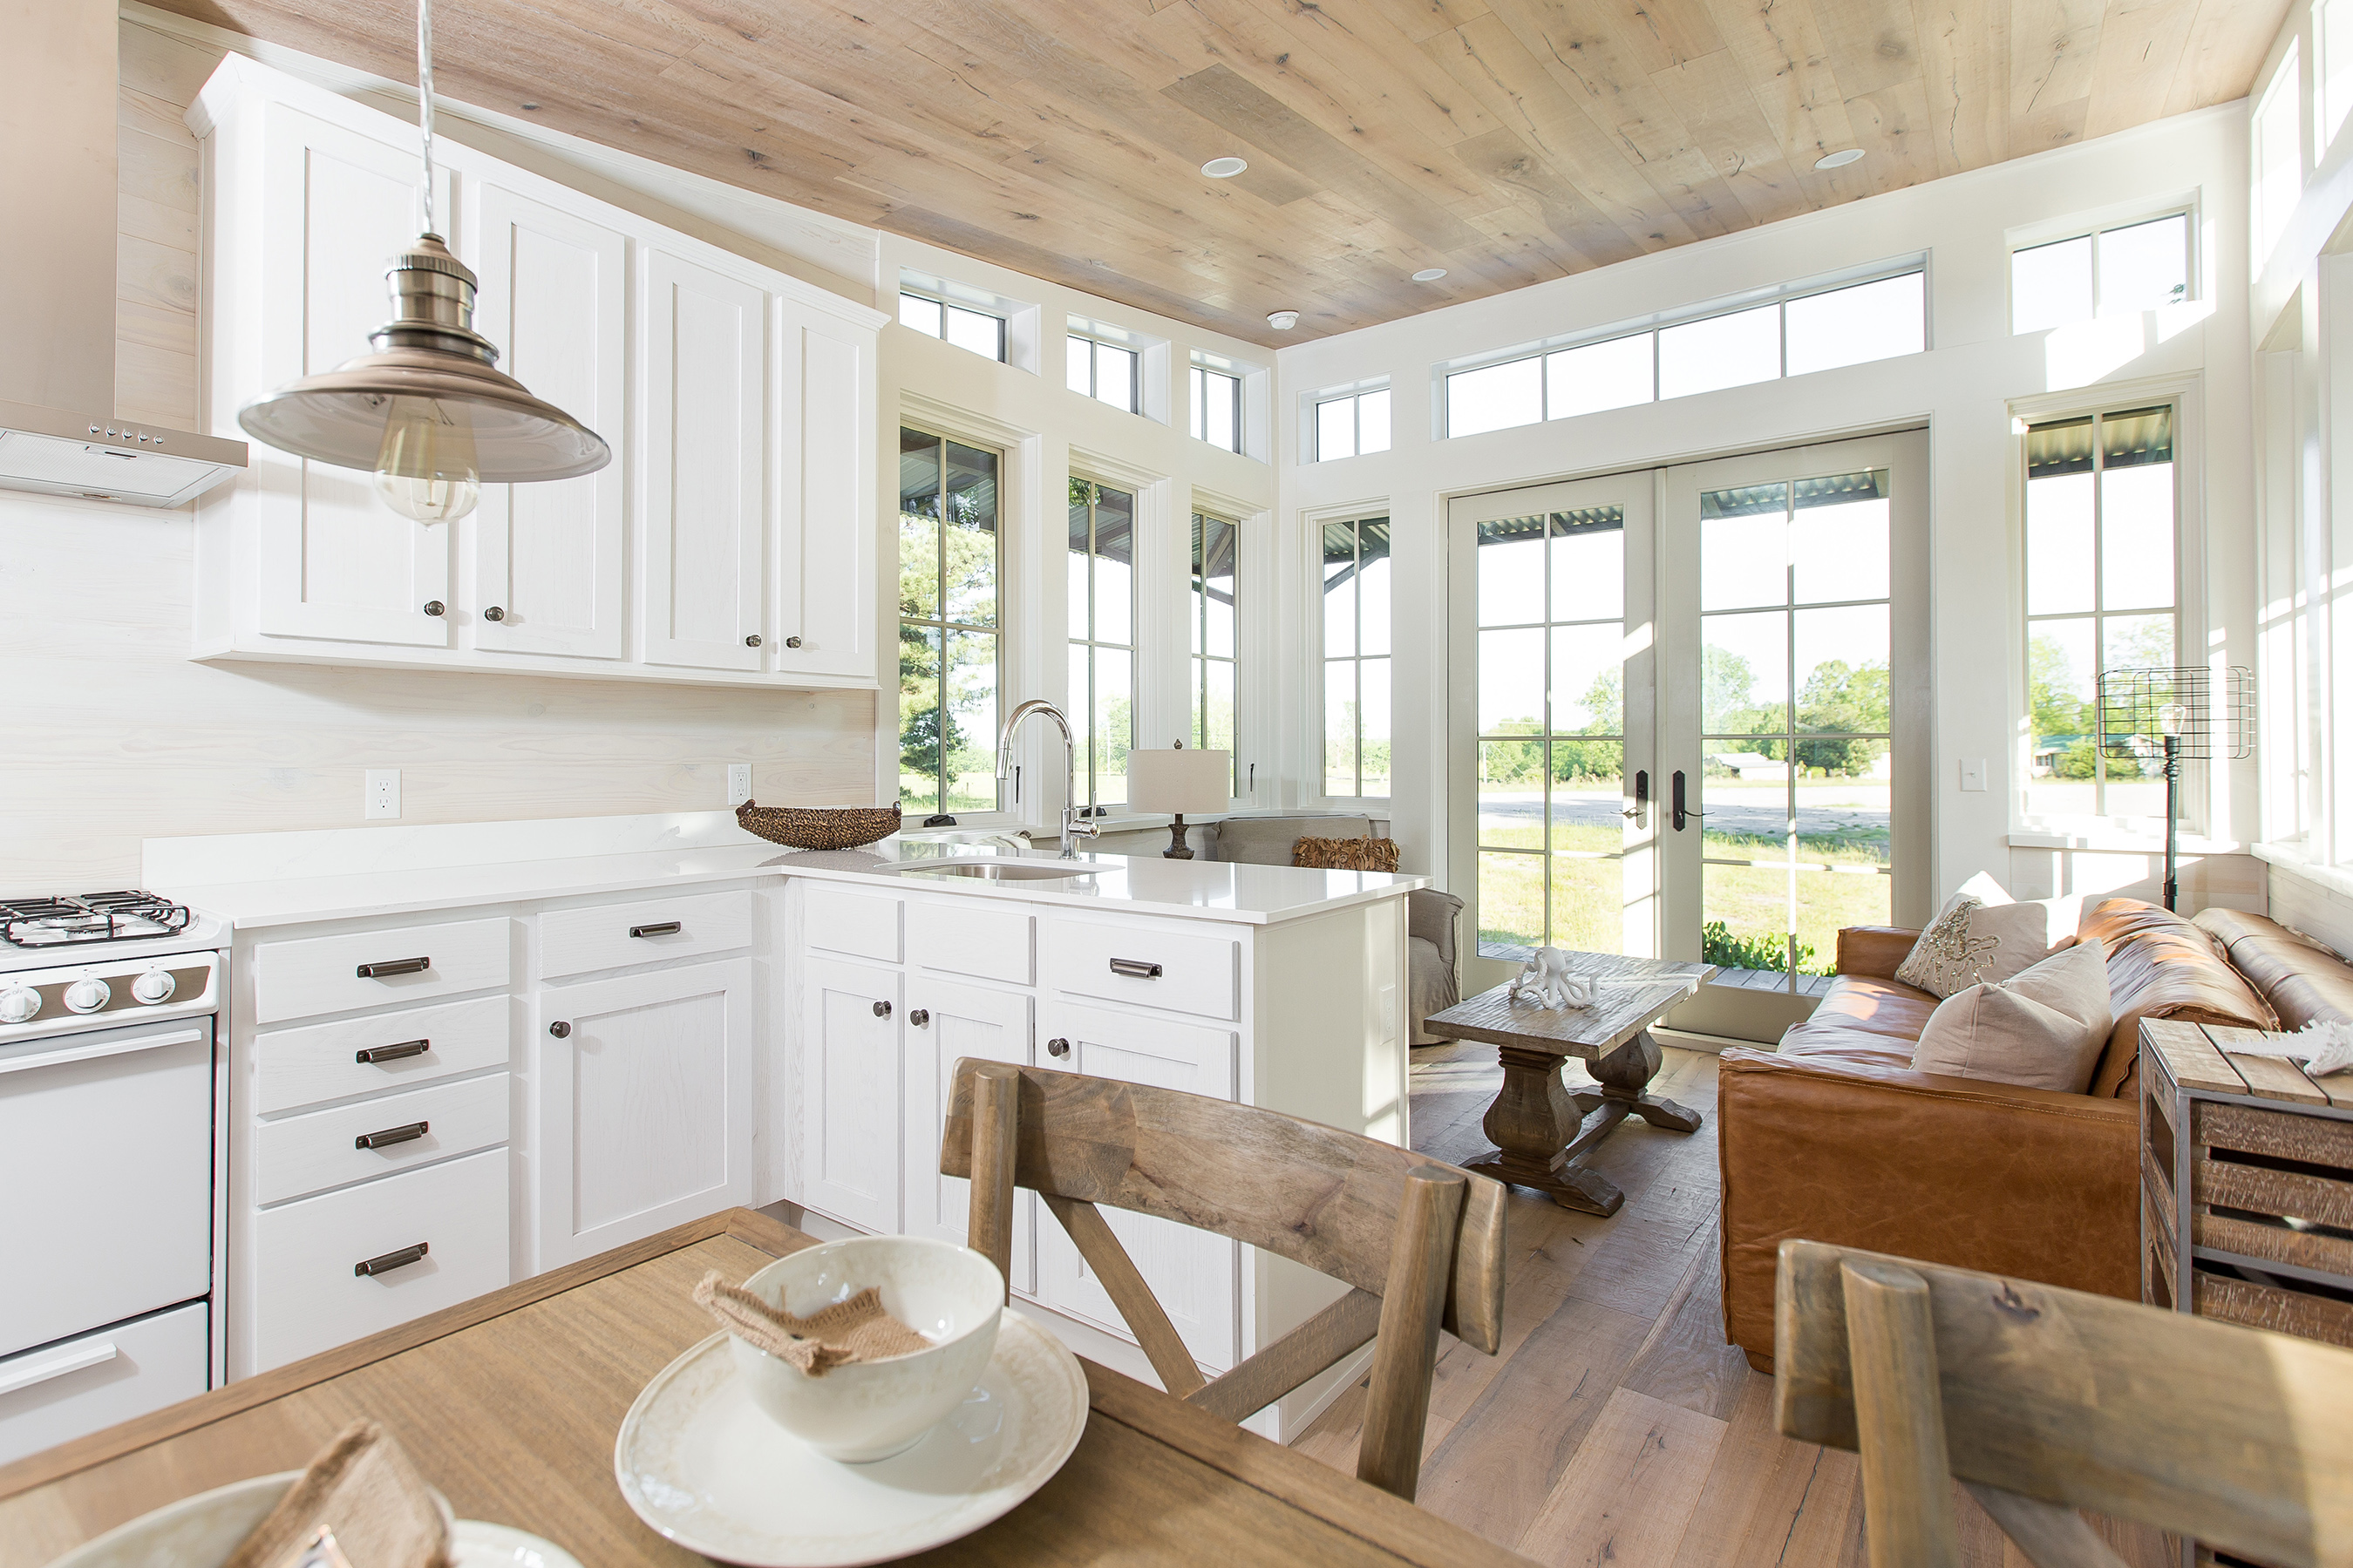 Designer Cottages® floor plans are inspired by nature. Large windows offer abundant natural light and 270-degree views, seamlessly welcoming the outdoors in.